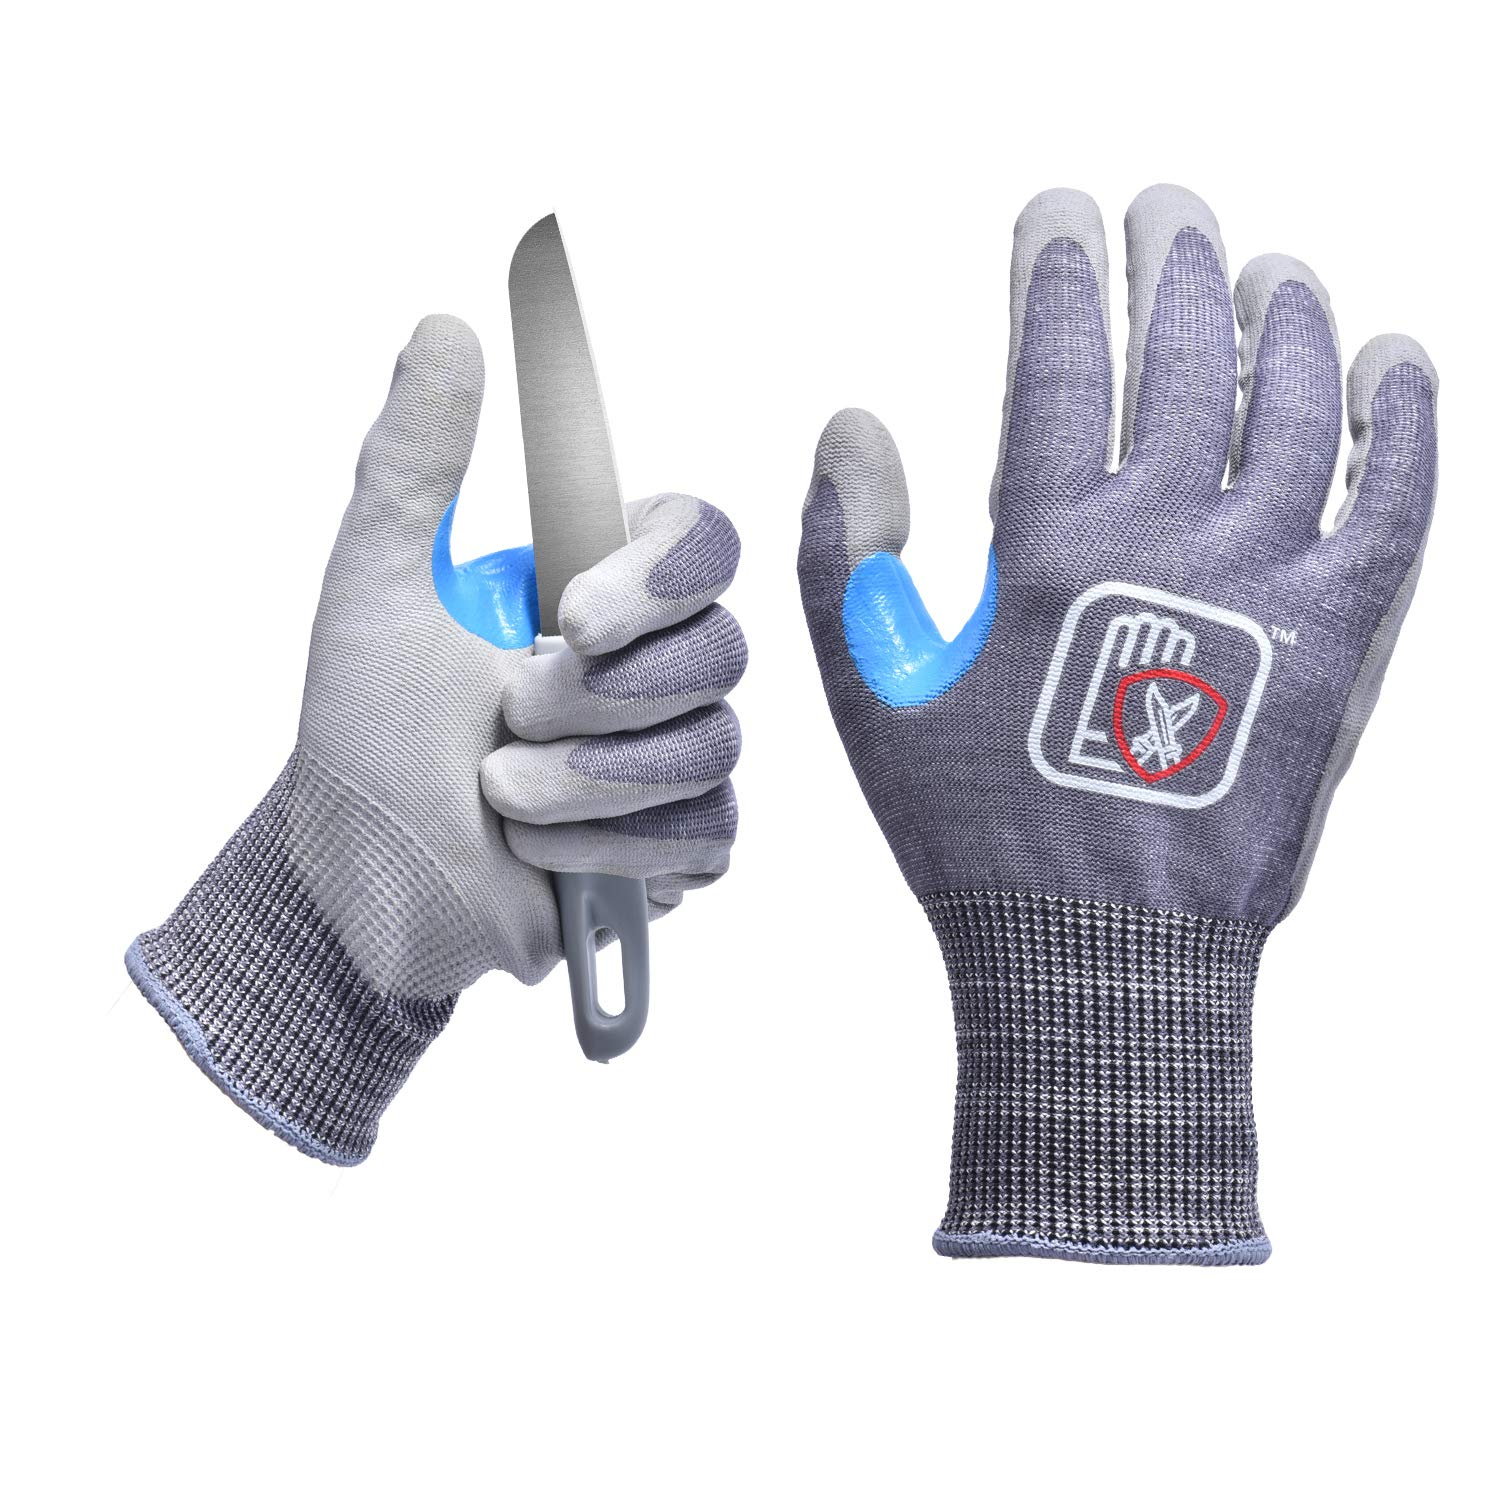 Manufacturers Wholesale CE Approved Black PU Coated Household Work Cut Resistant Safety <strong>Gloves</strong>